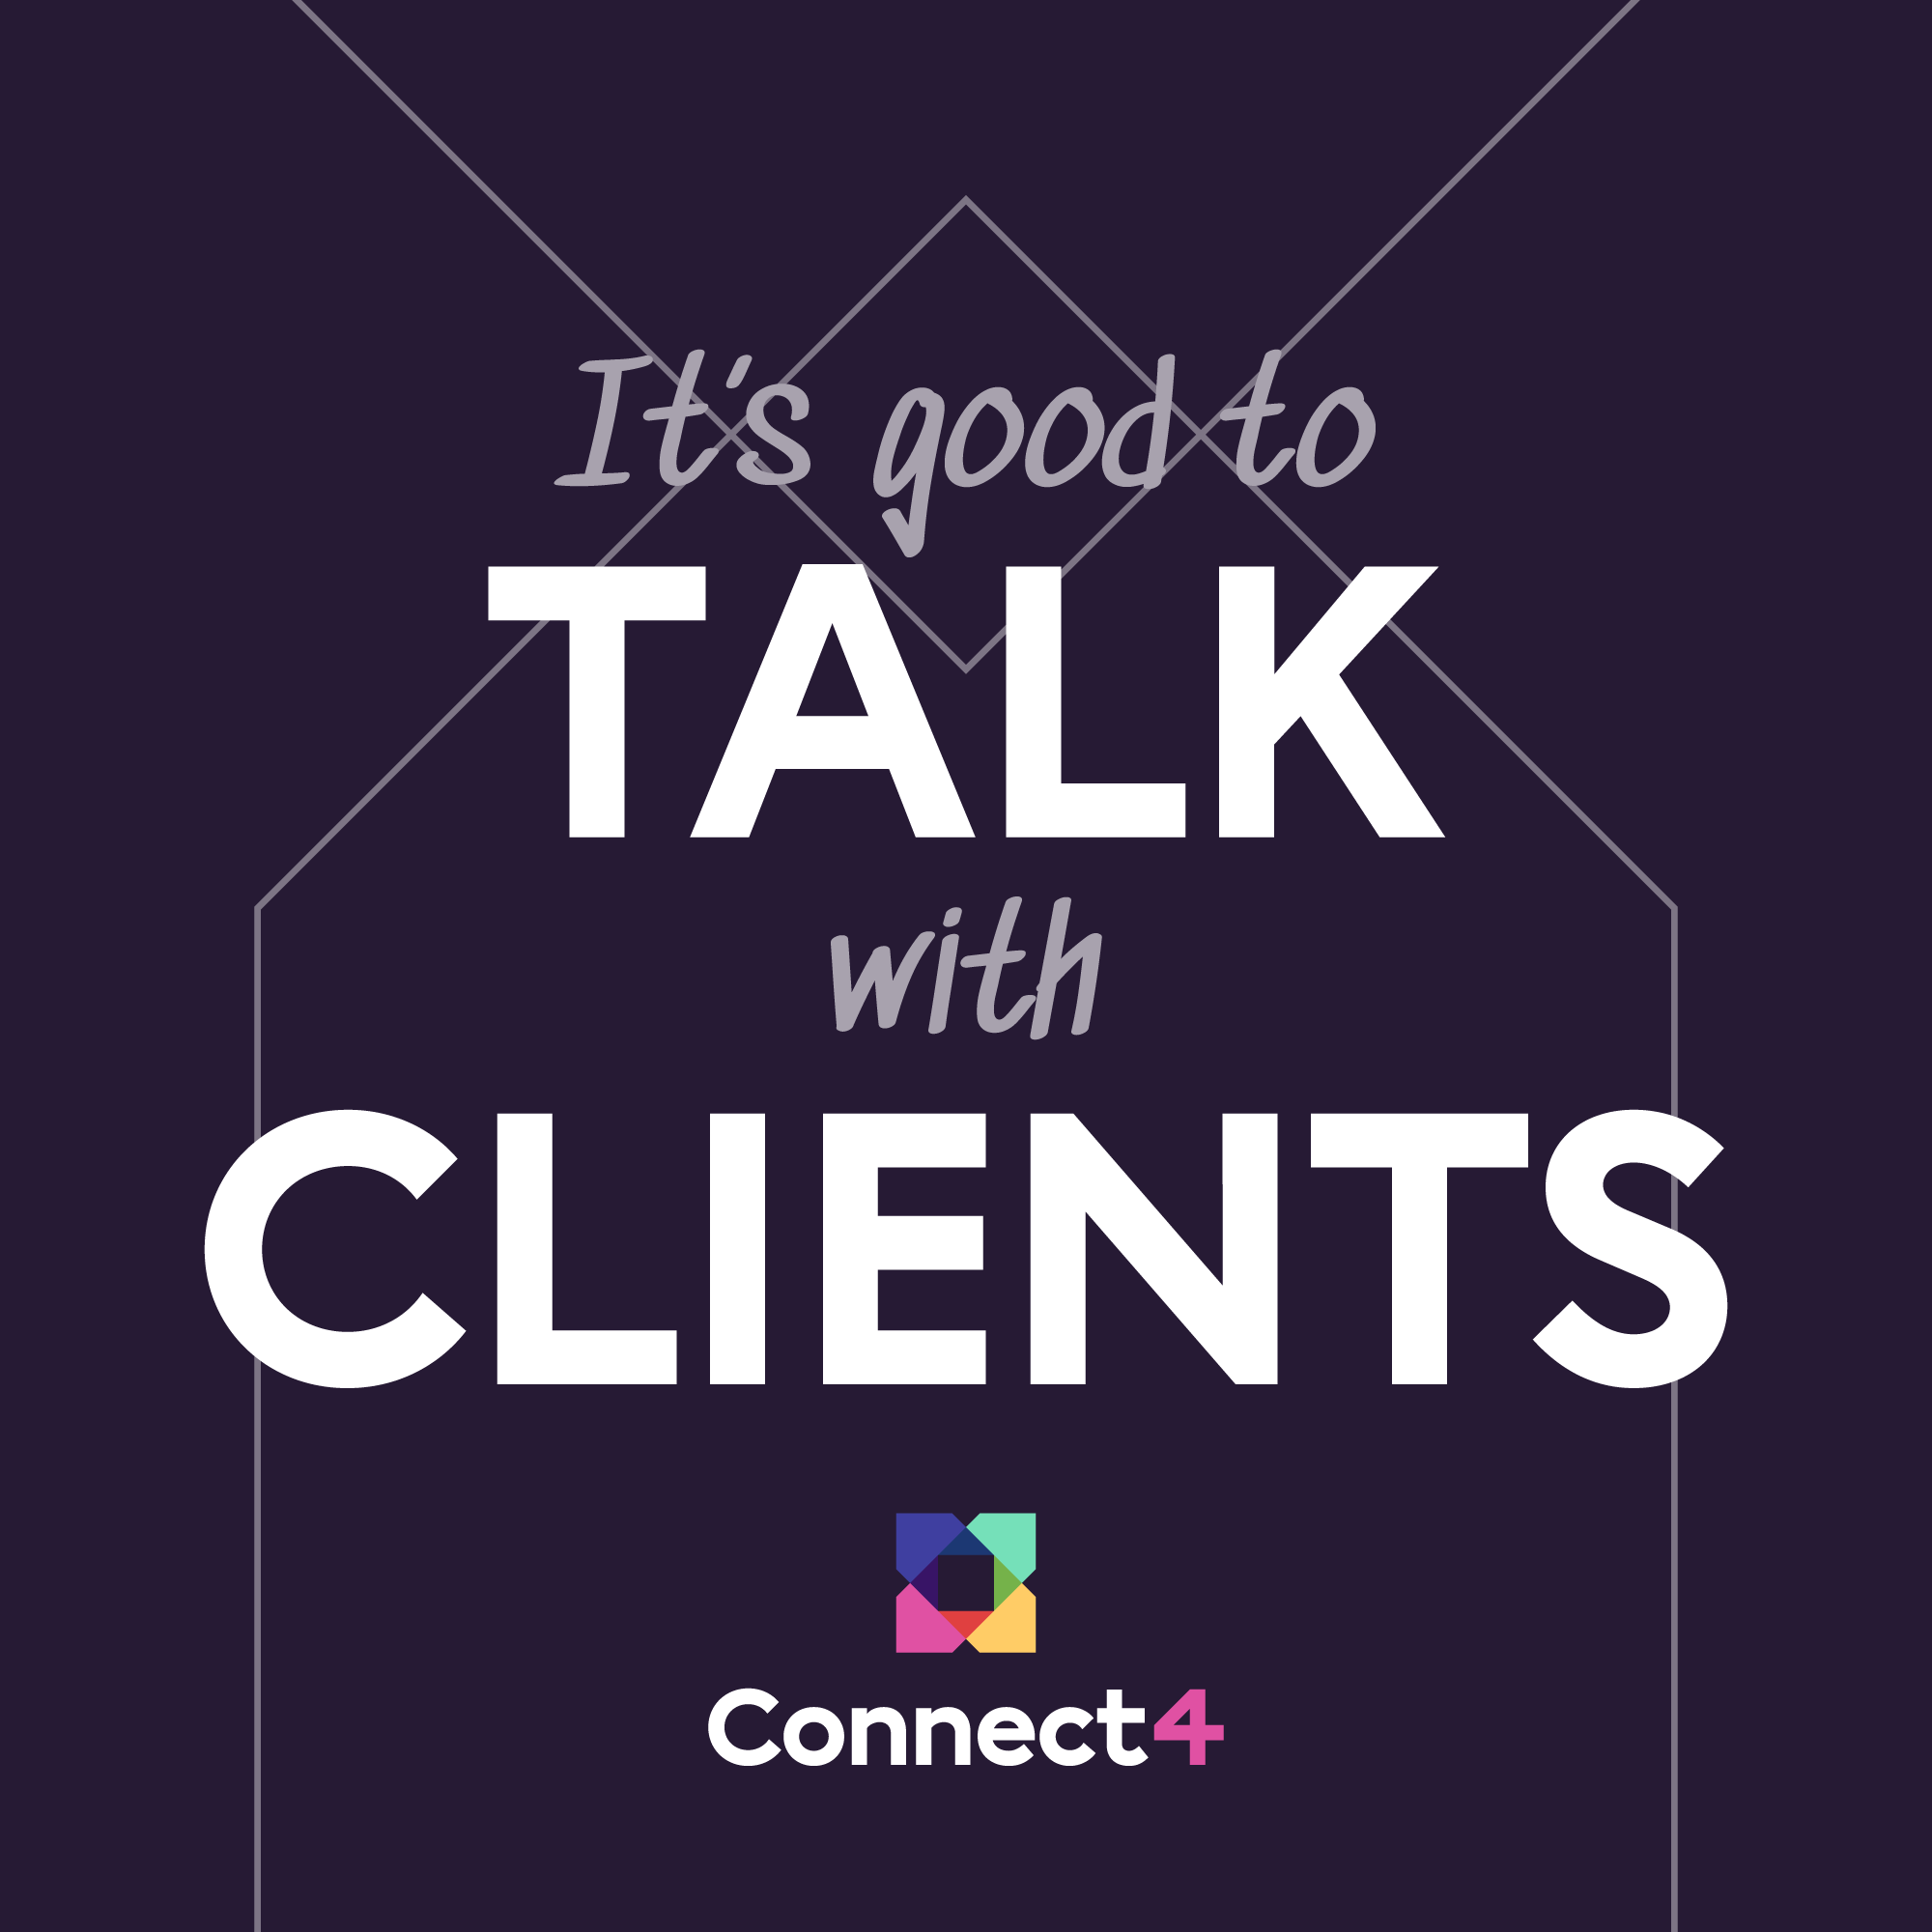 It's good to talk with clients